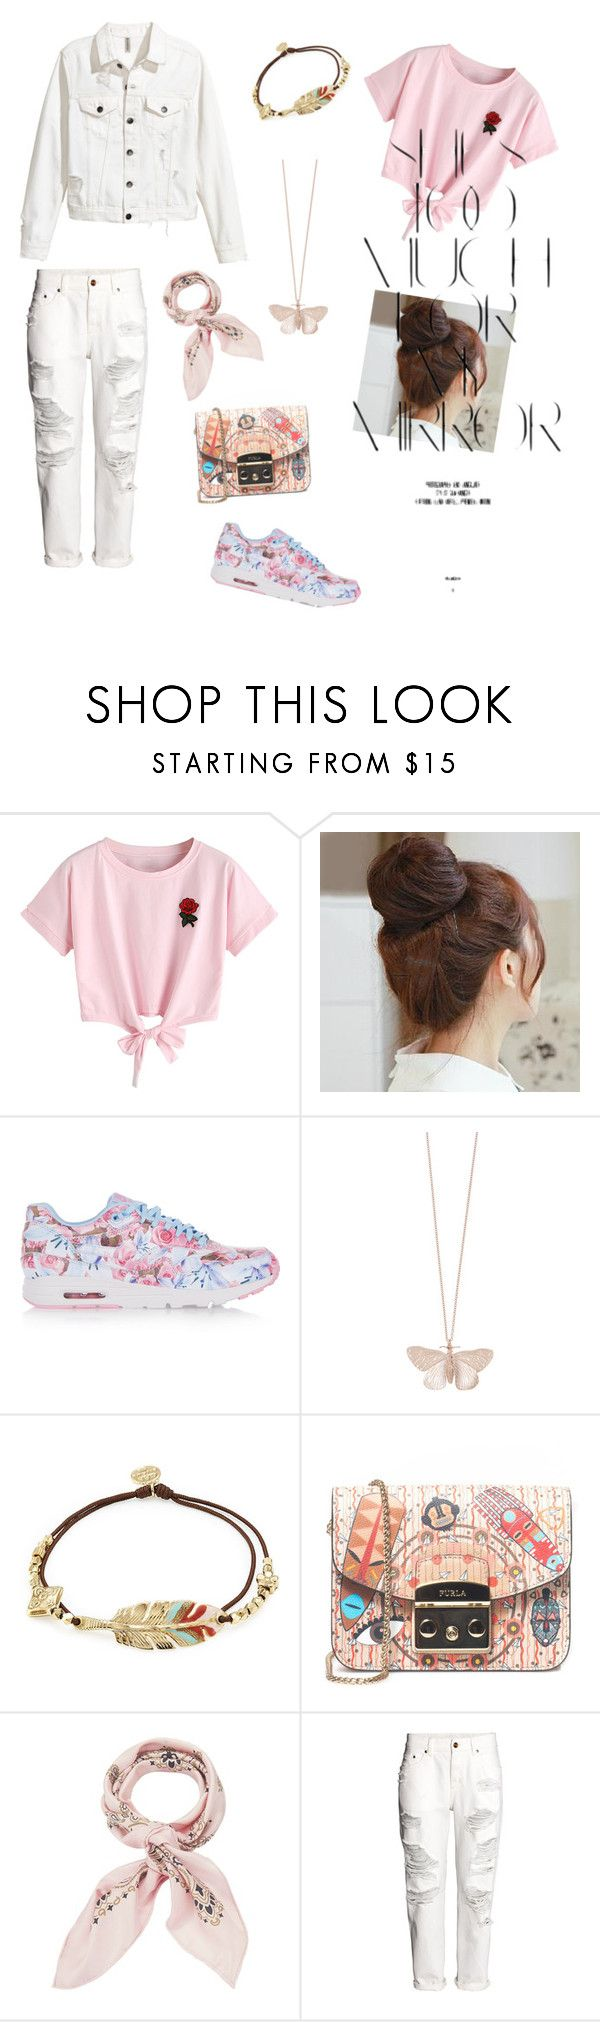 """Dudududu"" by deviisraeni on Polyvore featuring WithChic, Pin Show, Rika, NIKE, Alex Monroe, Gas Bijoux, Furla, Manipuri and H&M"